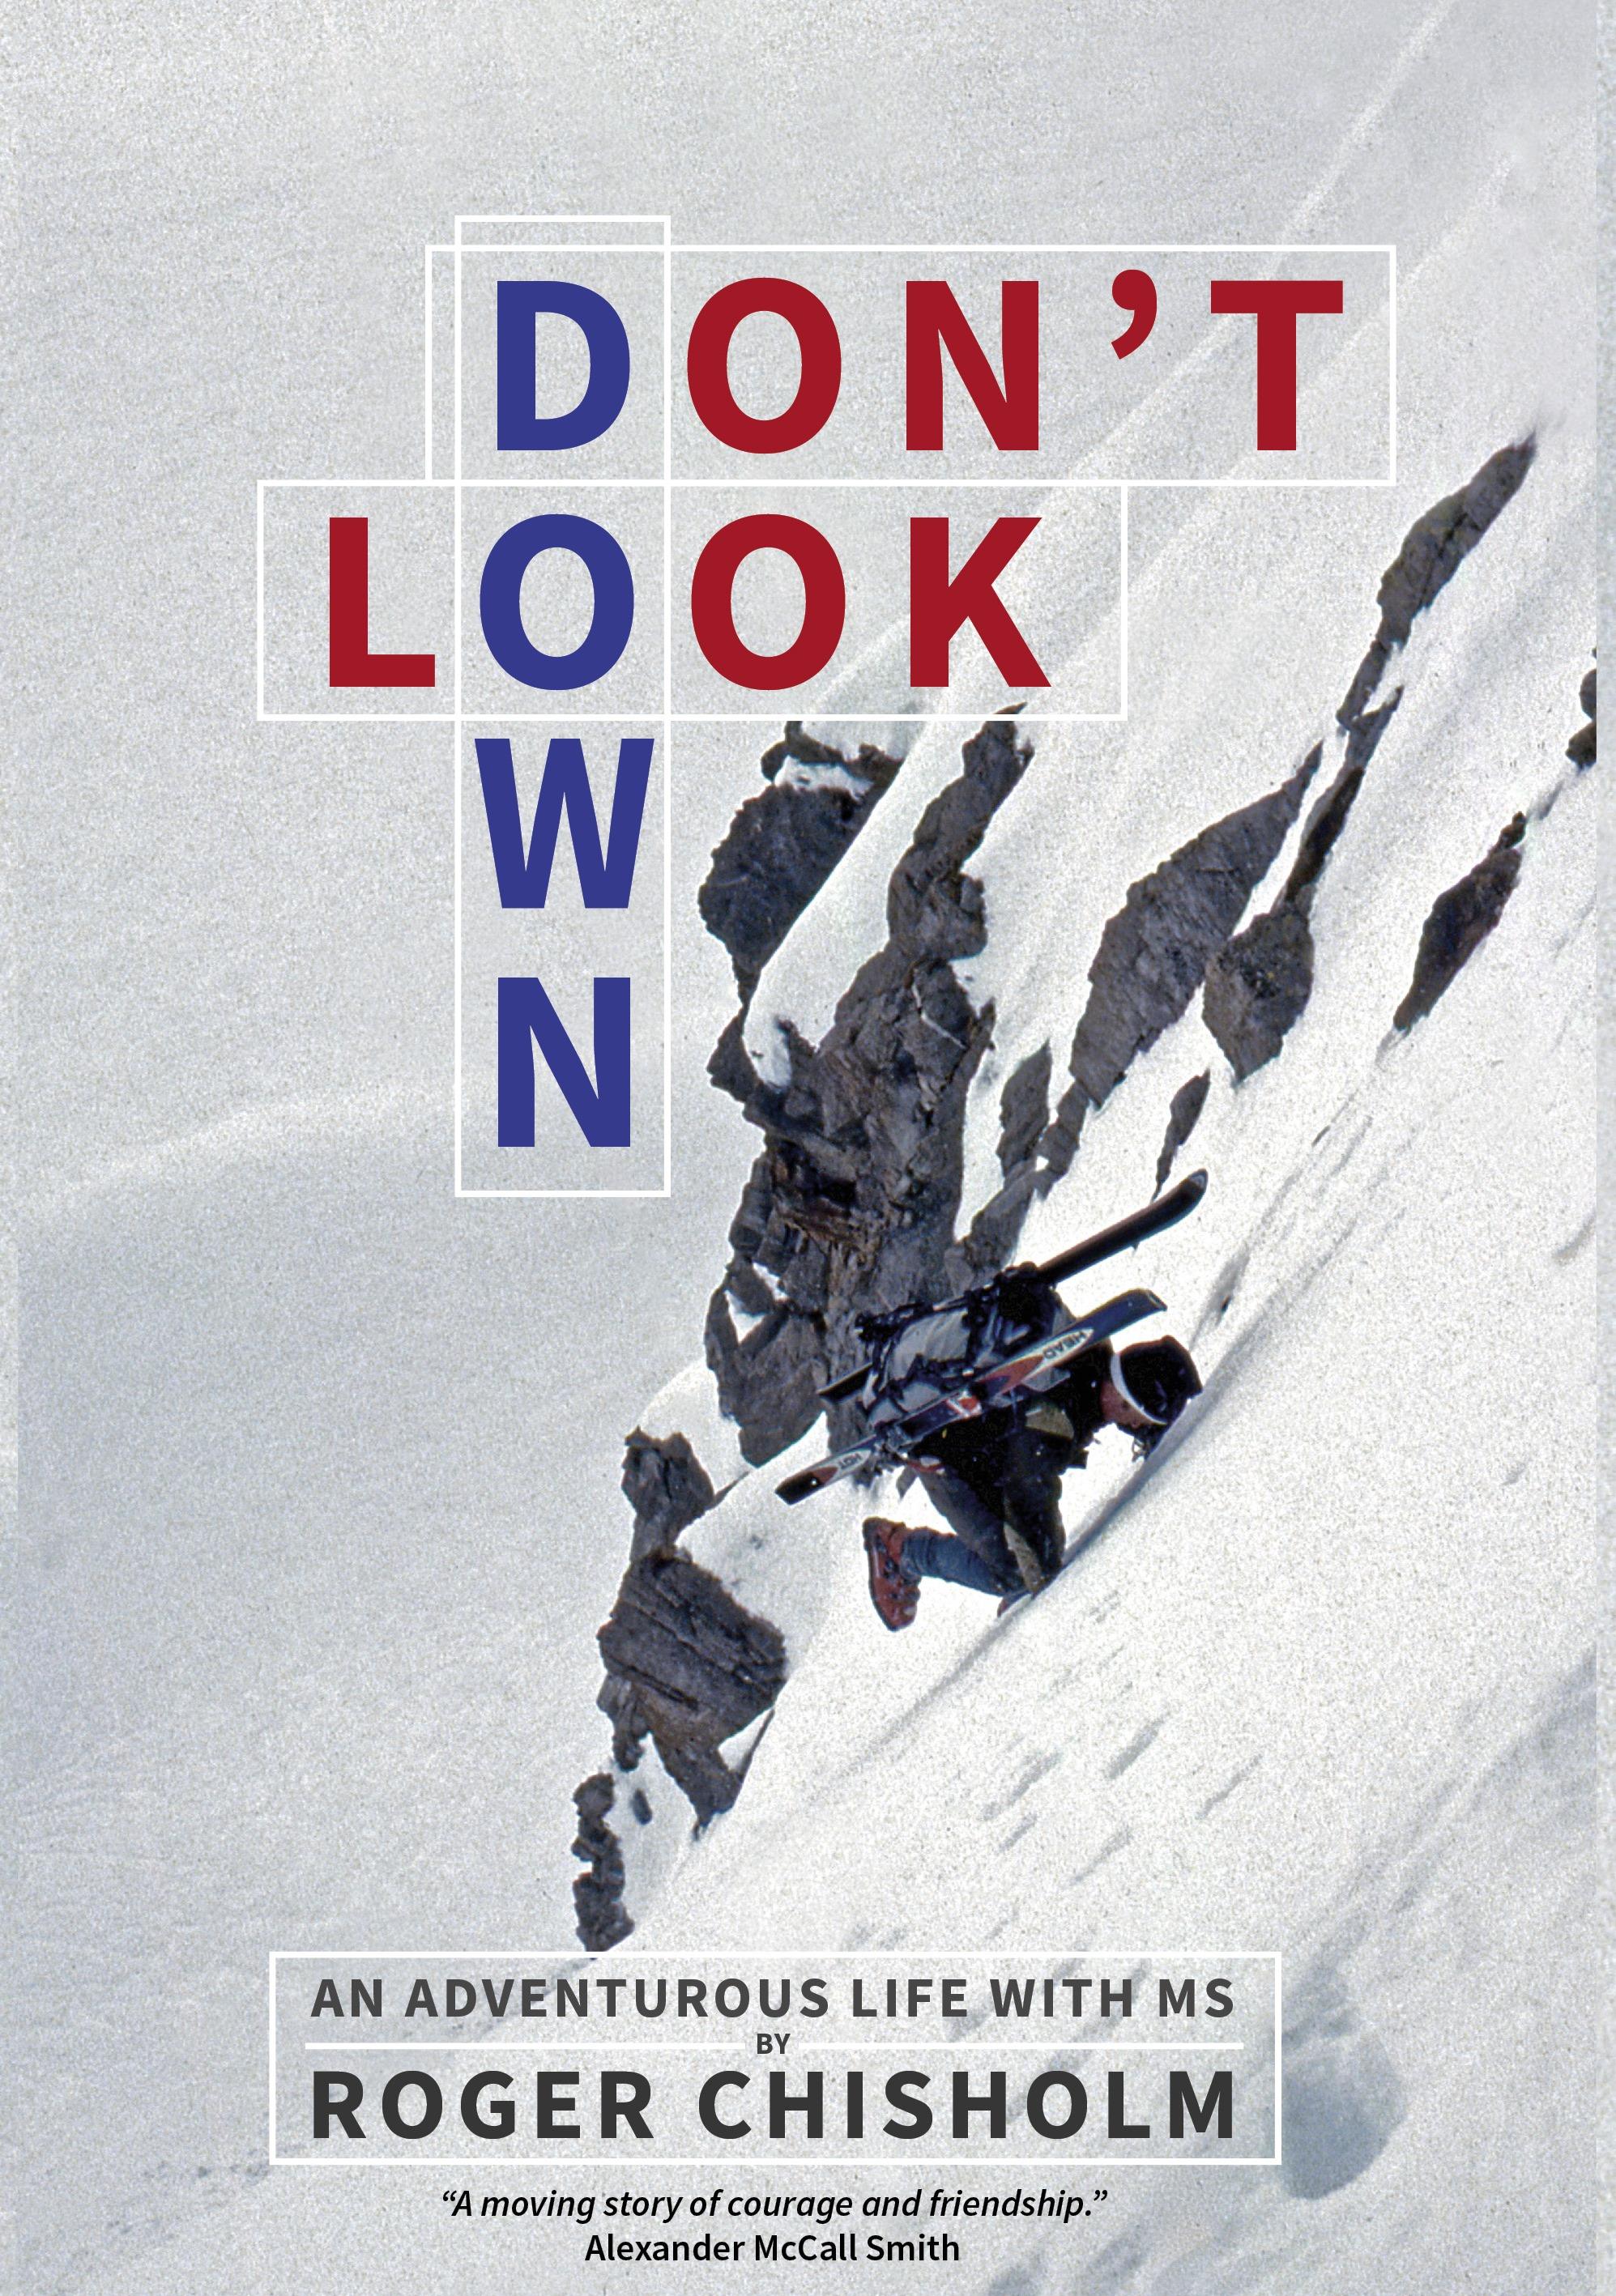 Don't Look Down by Roger Chisholm